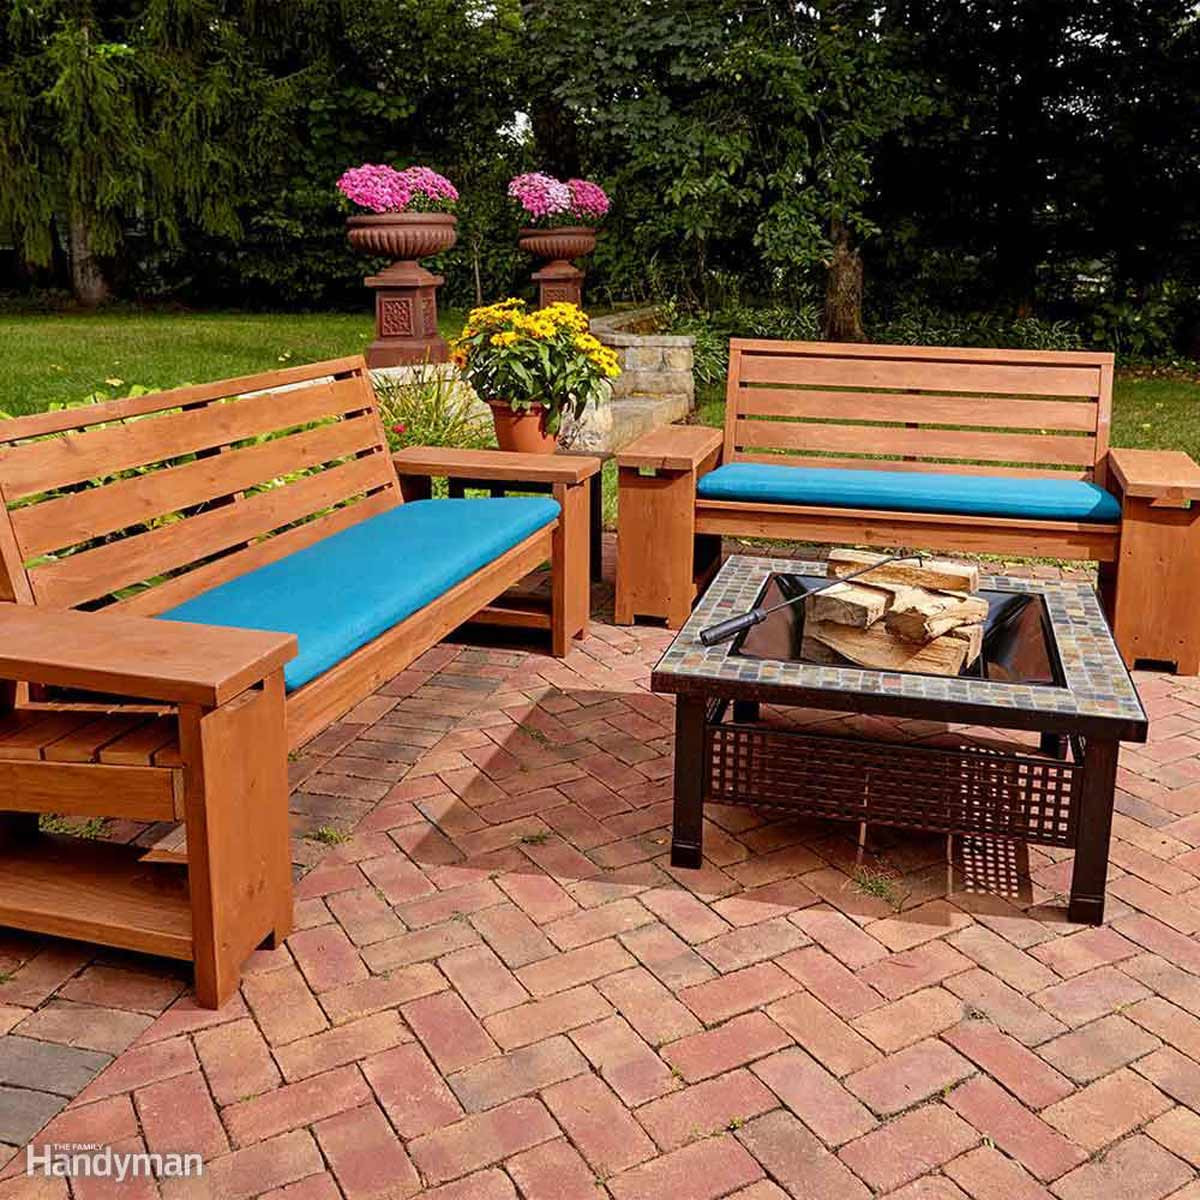 Best ideas about DIY Patio Benches . Save or Pin 15 Awesome Plans for DIY Patio Furniture Now.